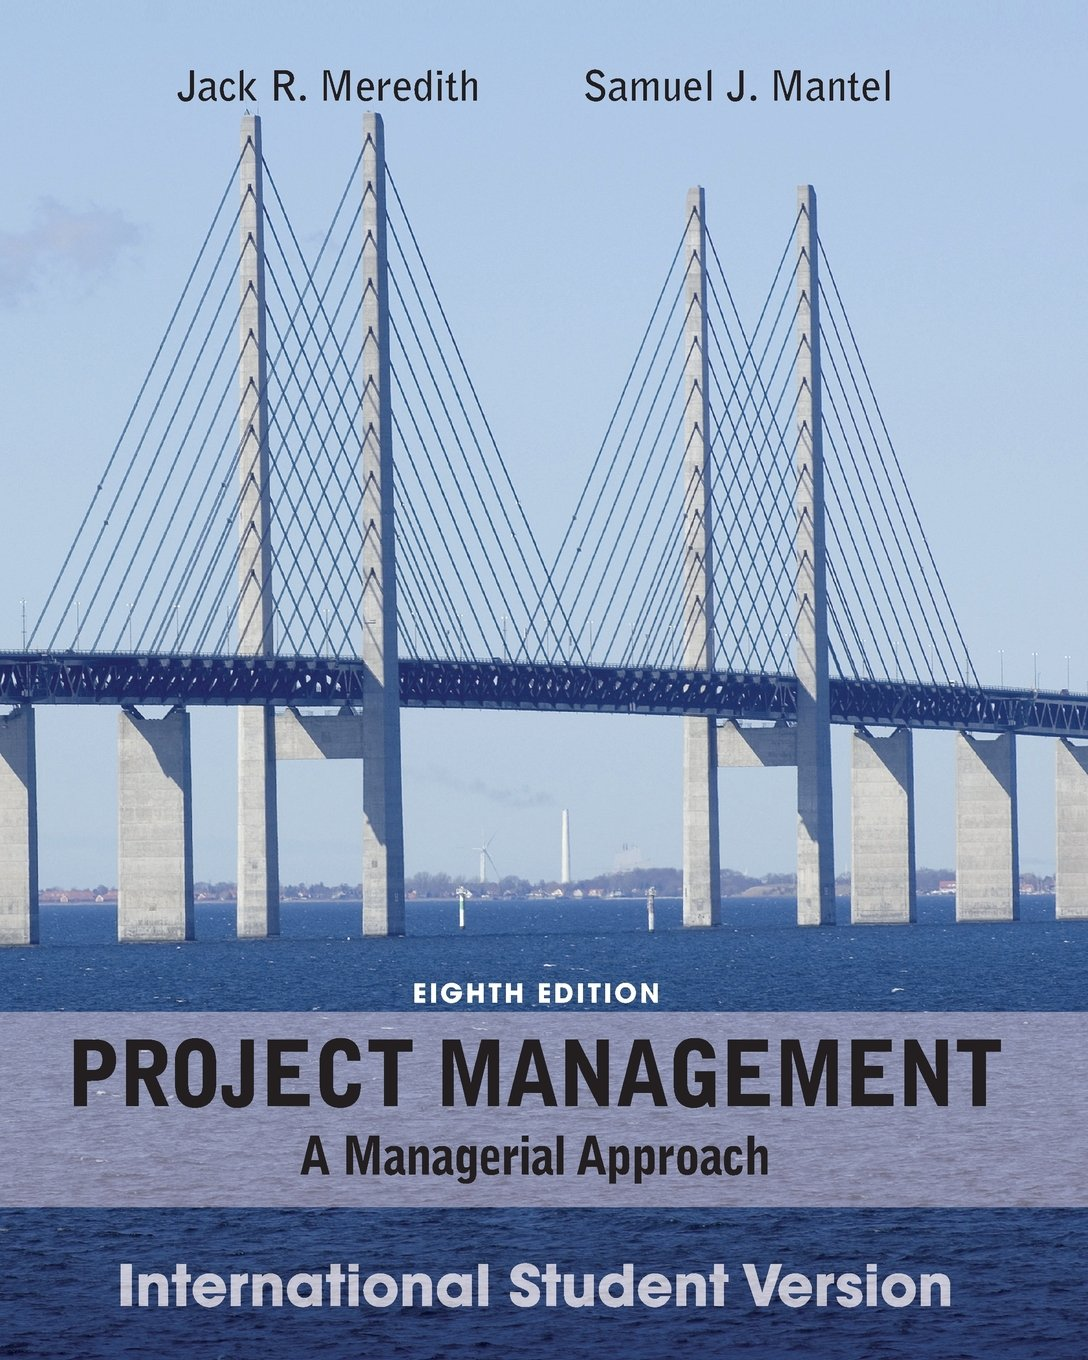 Project management a managerial approach amazon jack r project management a managerial approach amazon jack r meredith 9781118093733 books fandeluxe Choice Image